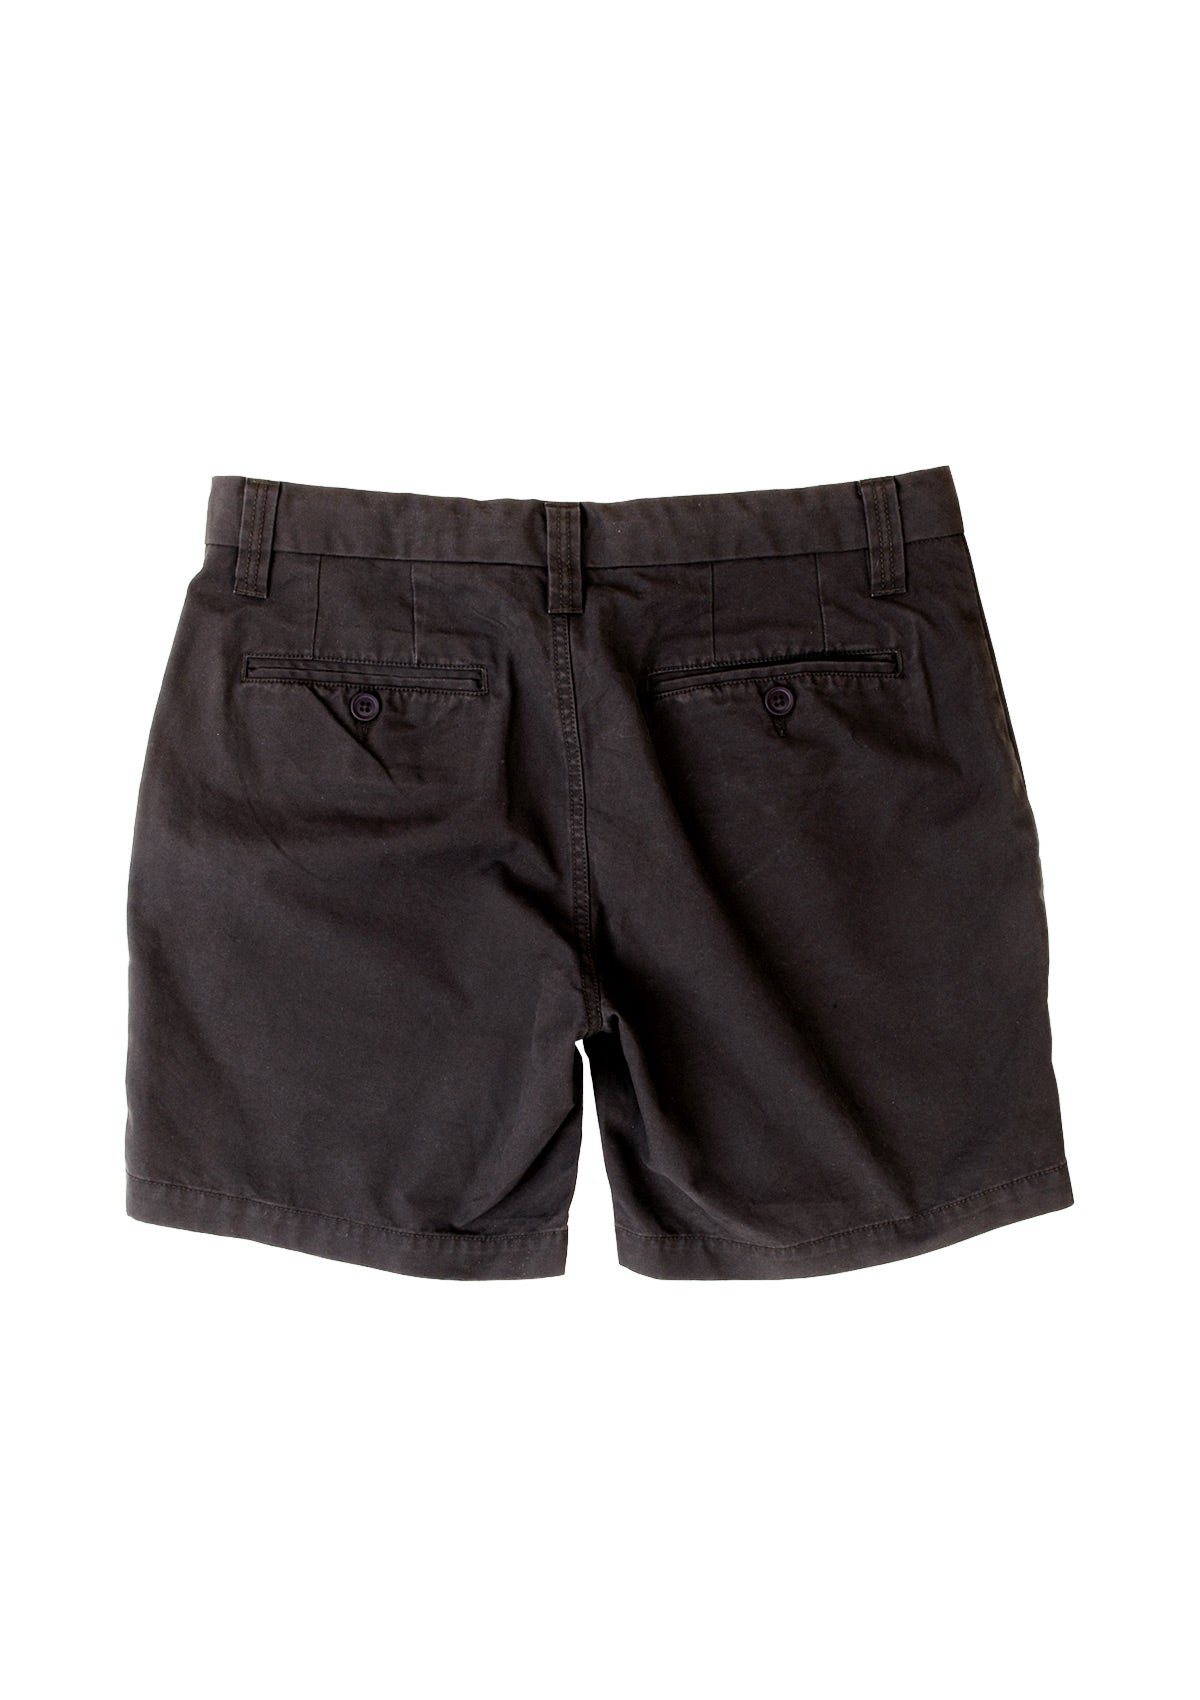 needessentials organic cotton walkshort black outdoor wear